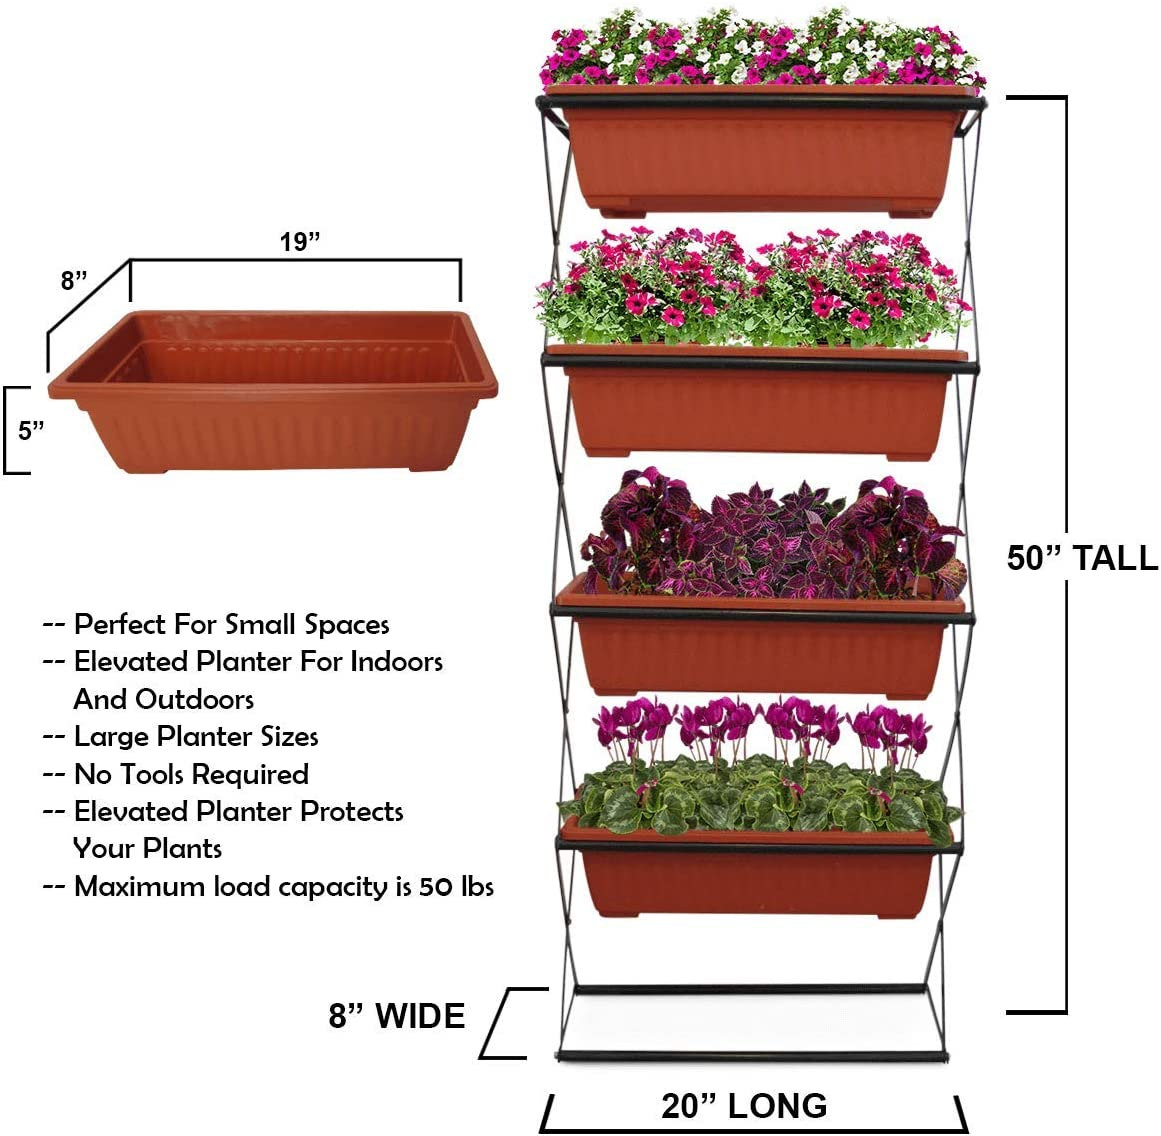 4- FT Freestanding Elevated Garden Planter- 4 Raised Terracotta Plastic Planters - Vertical For Indoor/ Outdoor- Deck, Patio, Balcony, 50 x 20 x 8 inches, Powder Coated Steel Green Frame. No Tools